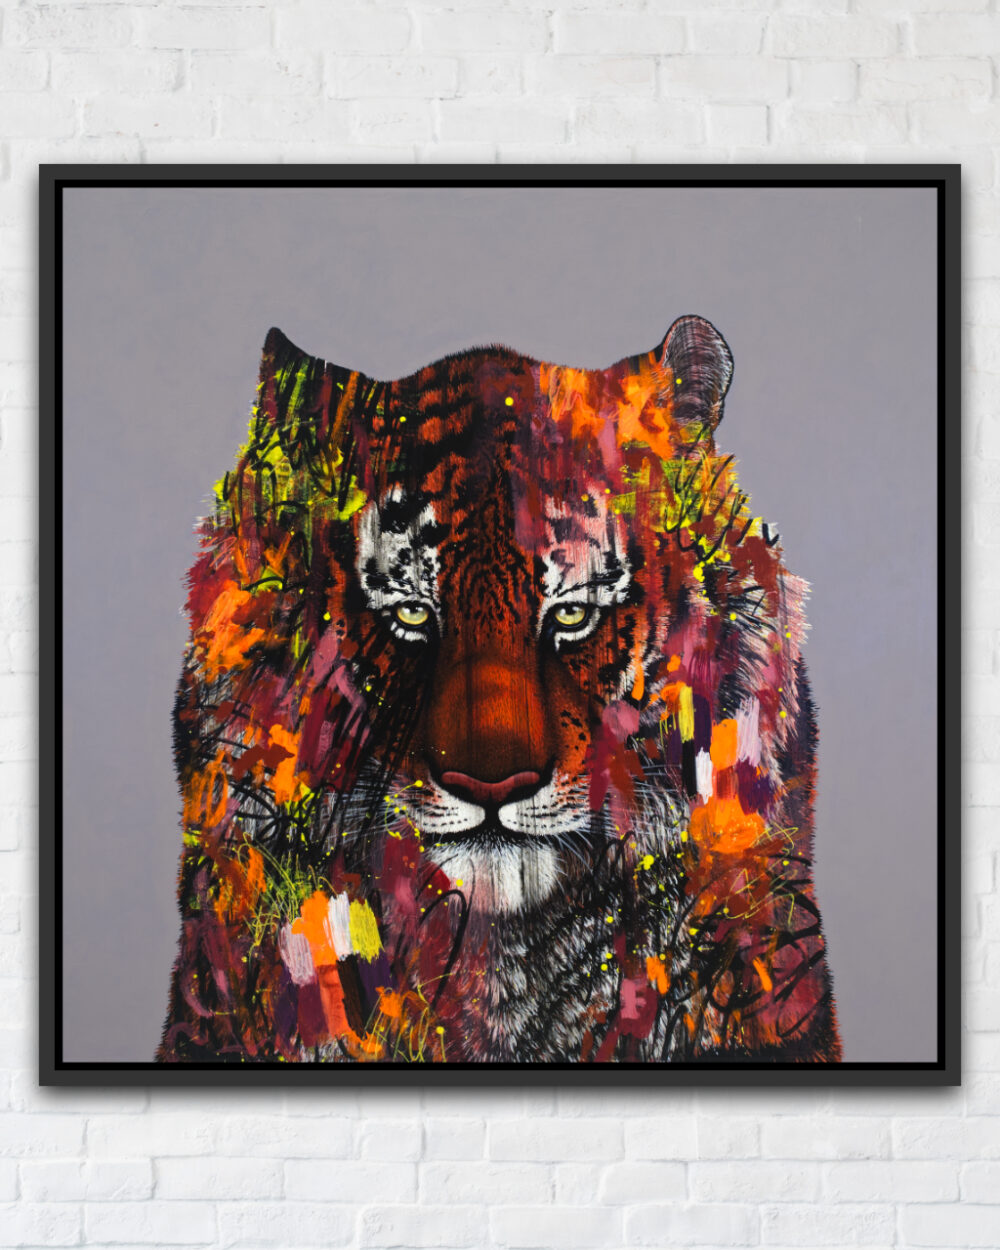 I Don't Want To Live In A World Without Tigers-Framed